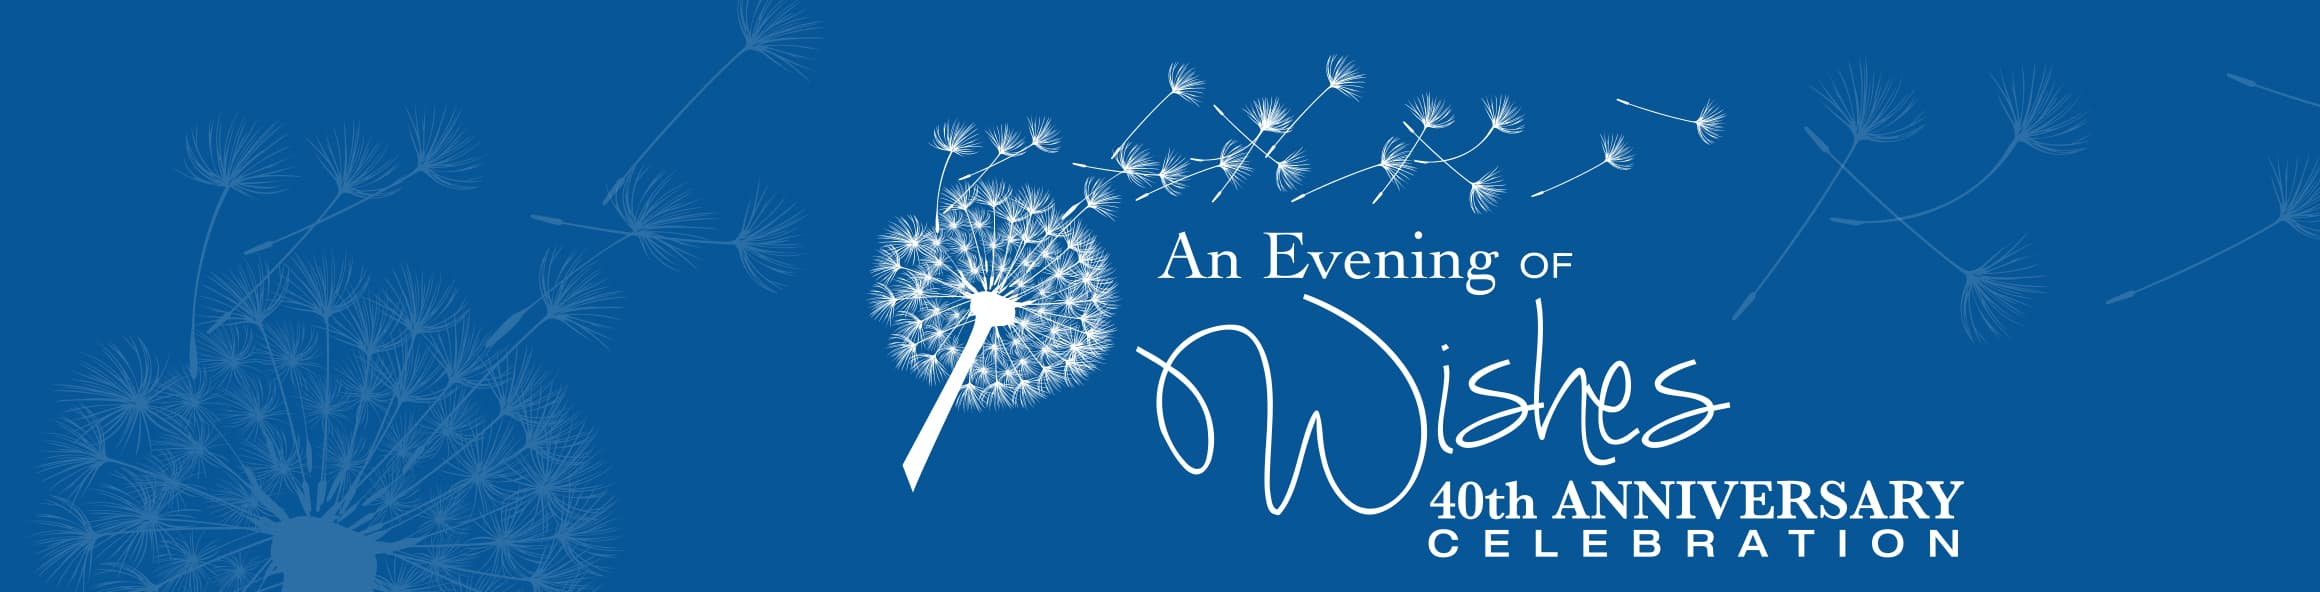 An Evening of Wishes 40th Anniversary Celebration